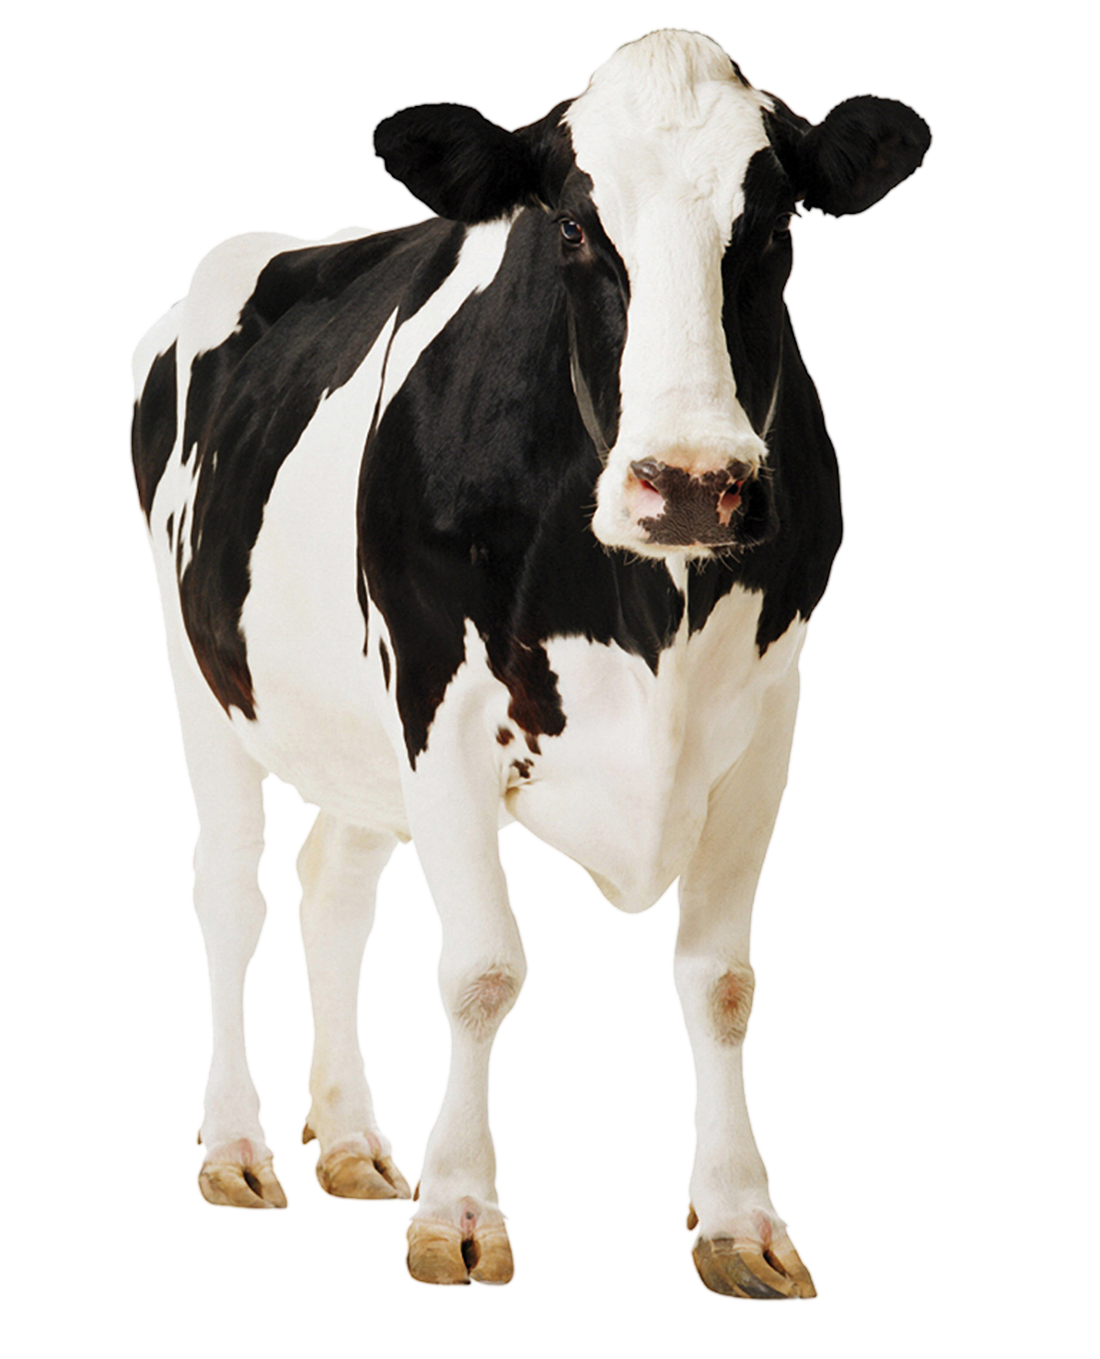 Cow Png Transparent Image - Baby Cow PNG HD